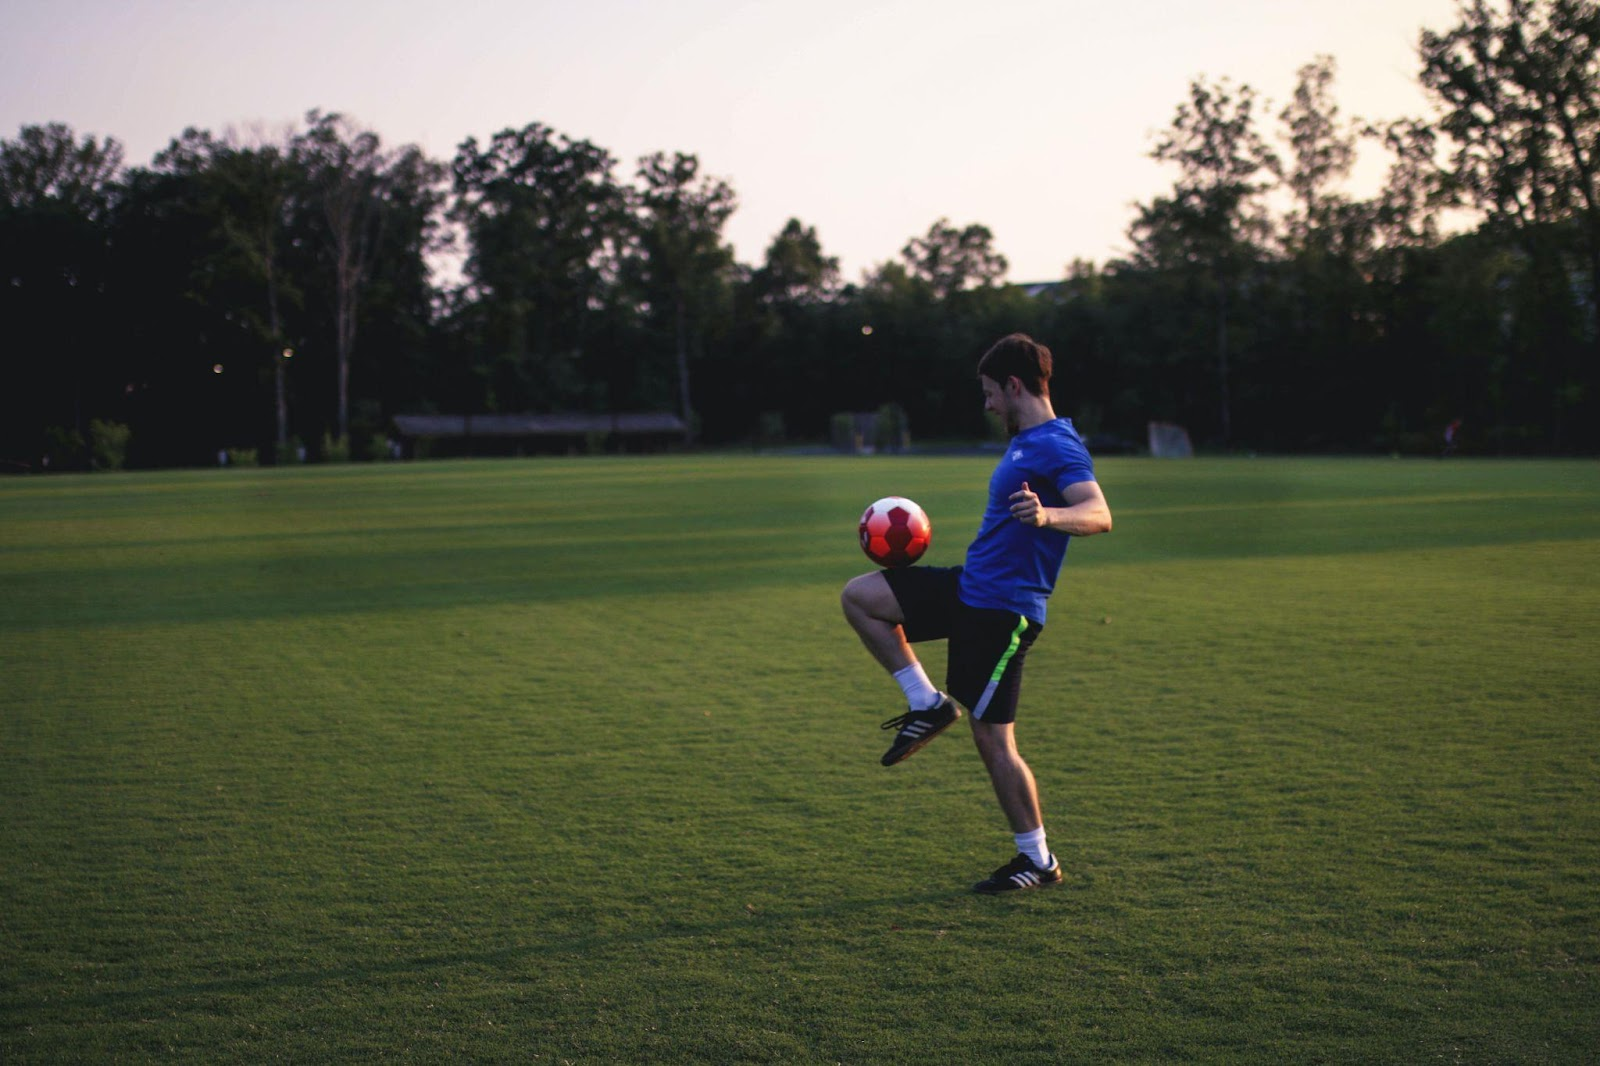 How Sports Improve Physical and Emotional Health